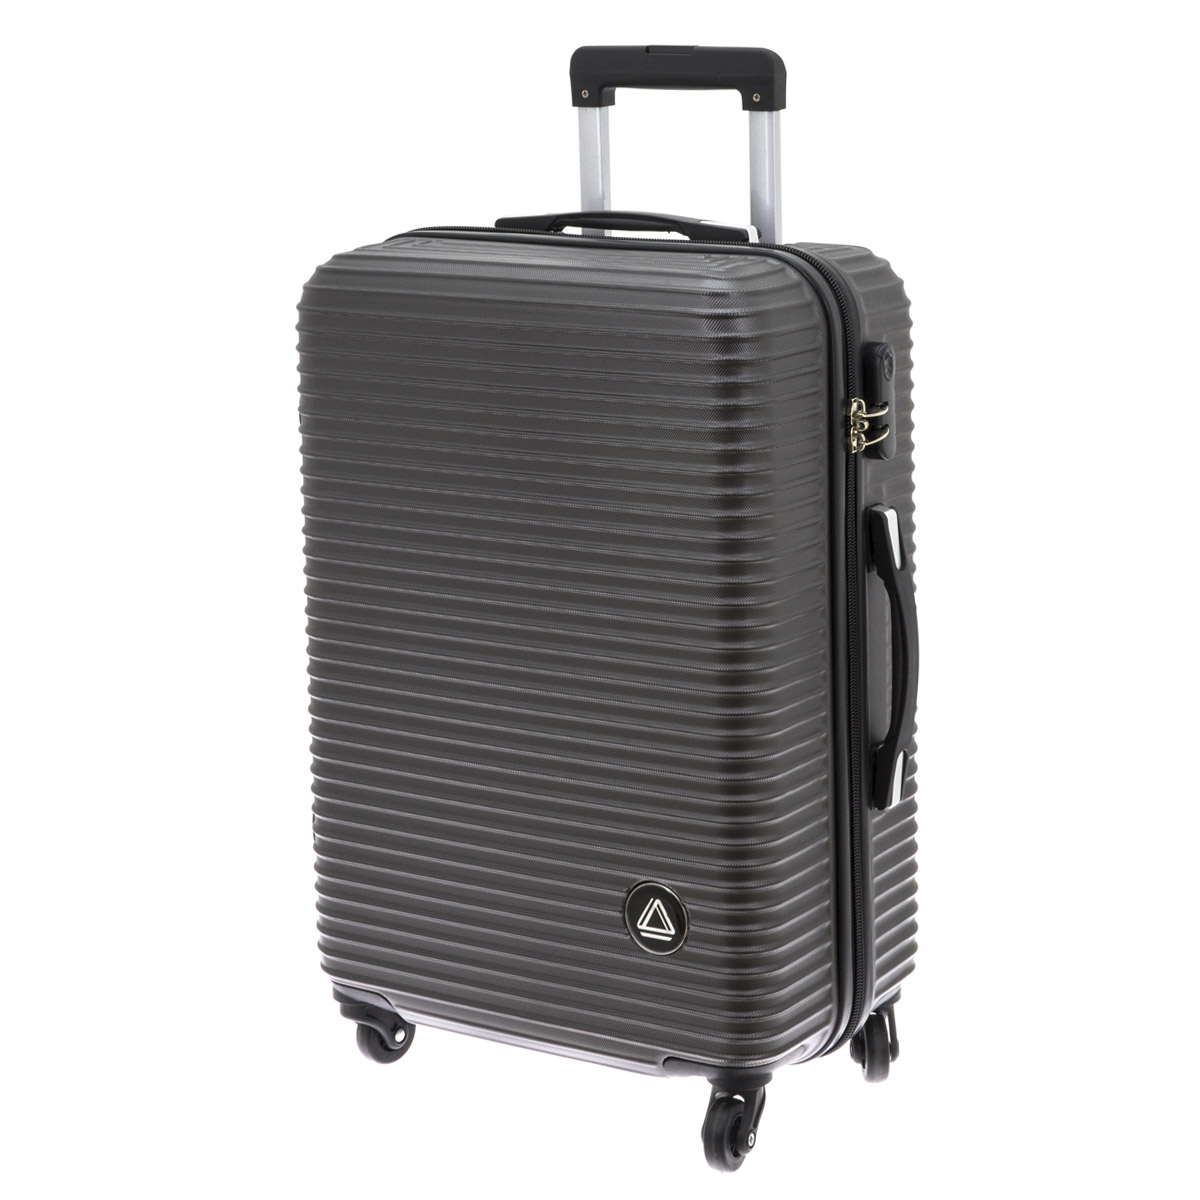 Valise trolley coque ABS \'Davidt\'s\' gris anthracite - 65x44x26 cm - [Q9938]